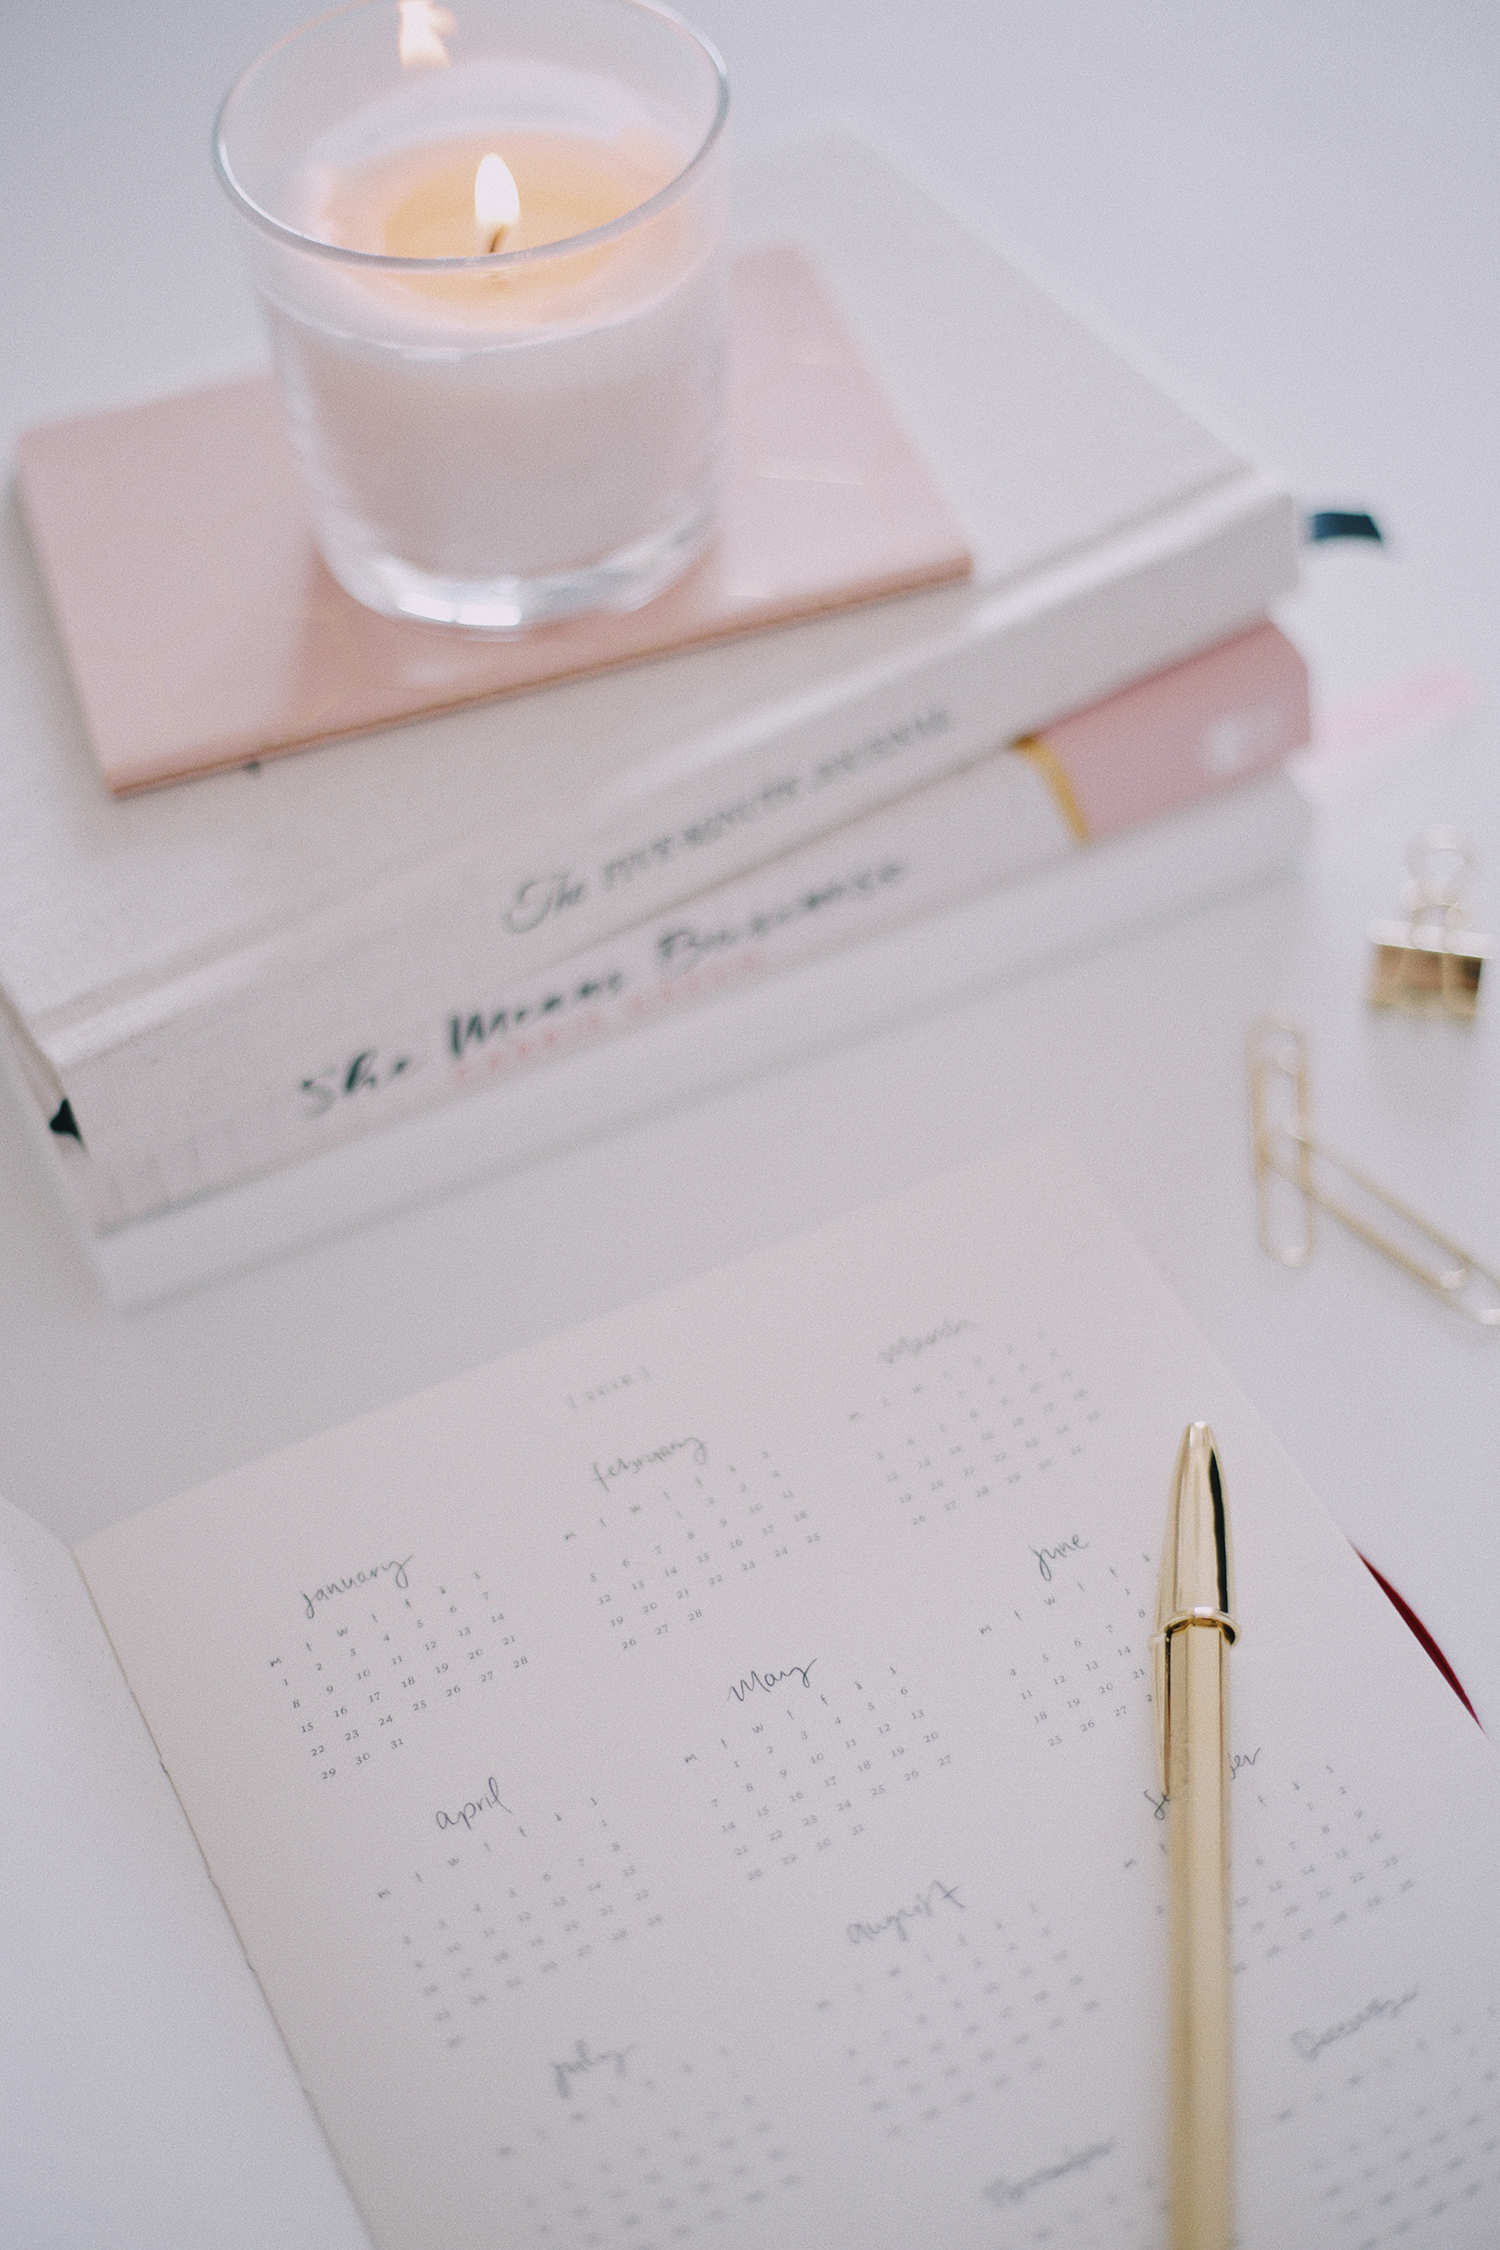 5 Reasons Why I'm Grateful To Have Started A Blog // Why you should start a blog! Blogging Advice. // Notes from Joana